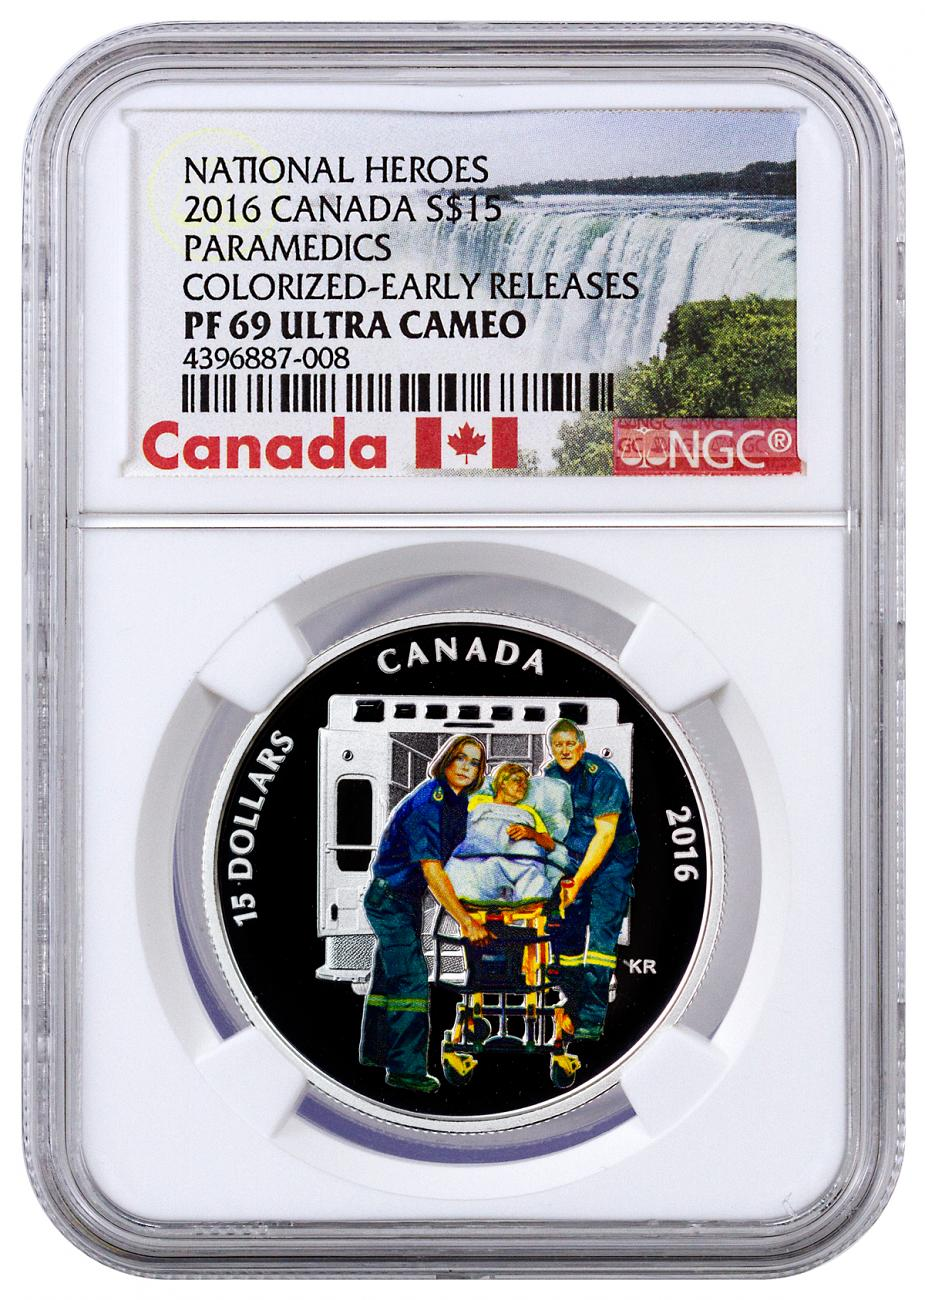 2016 Canada $15 3/4 oz. Colorized Proof Silver National Heroes - Paramedics - NGC PF69 UC Early Releases (Exclusive Canada Label)